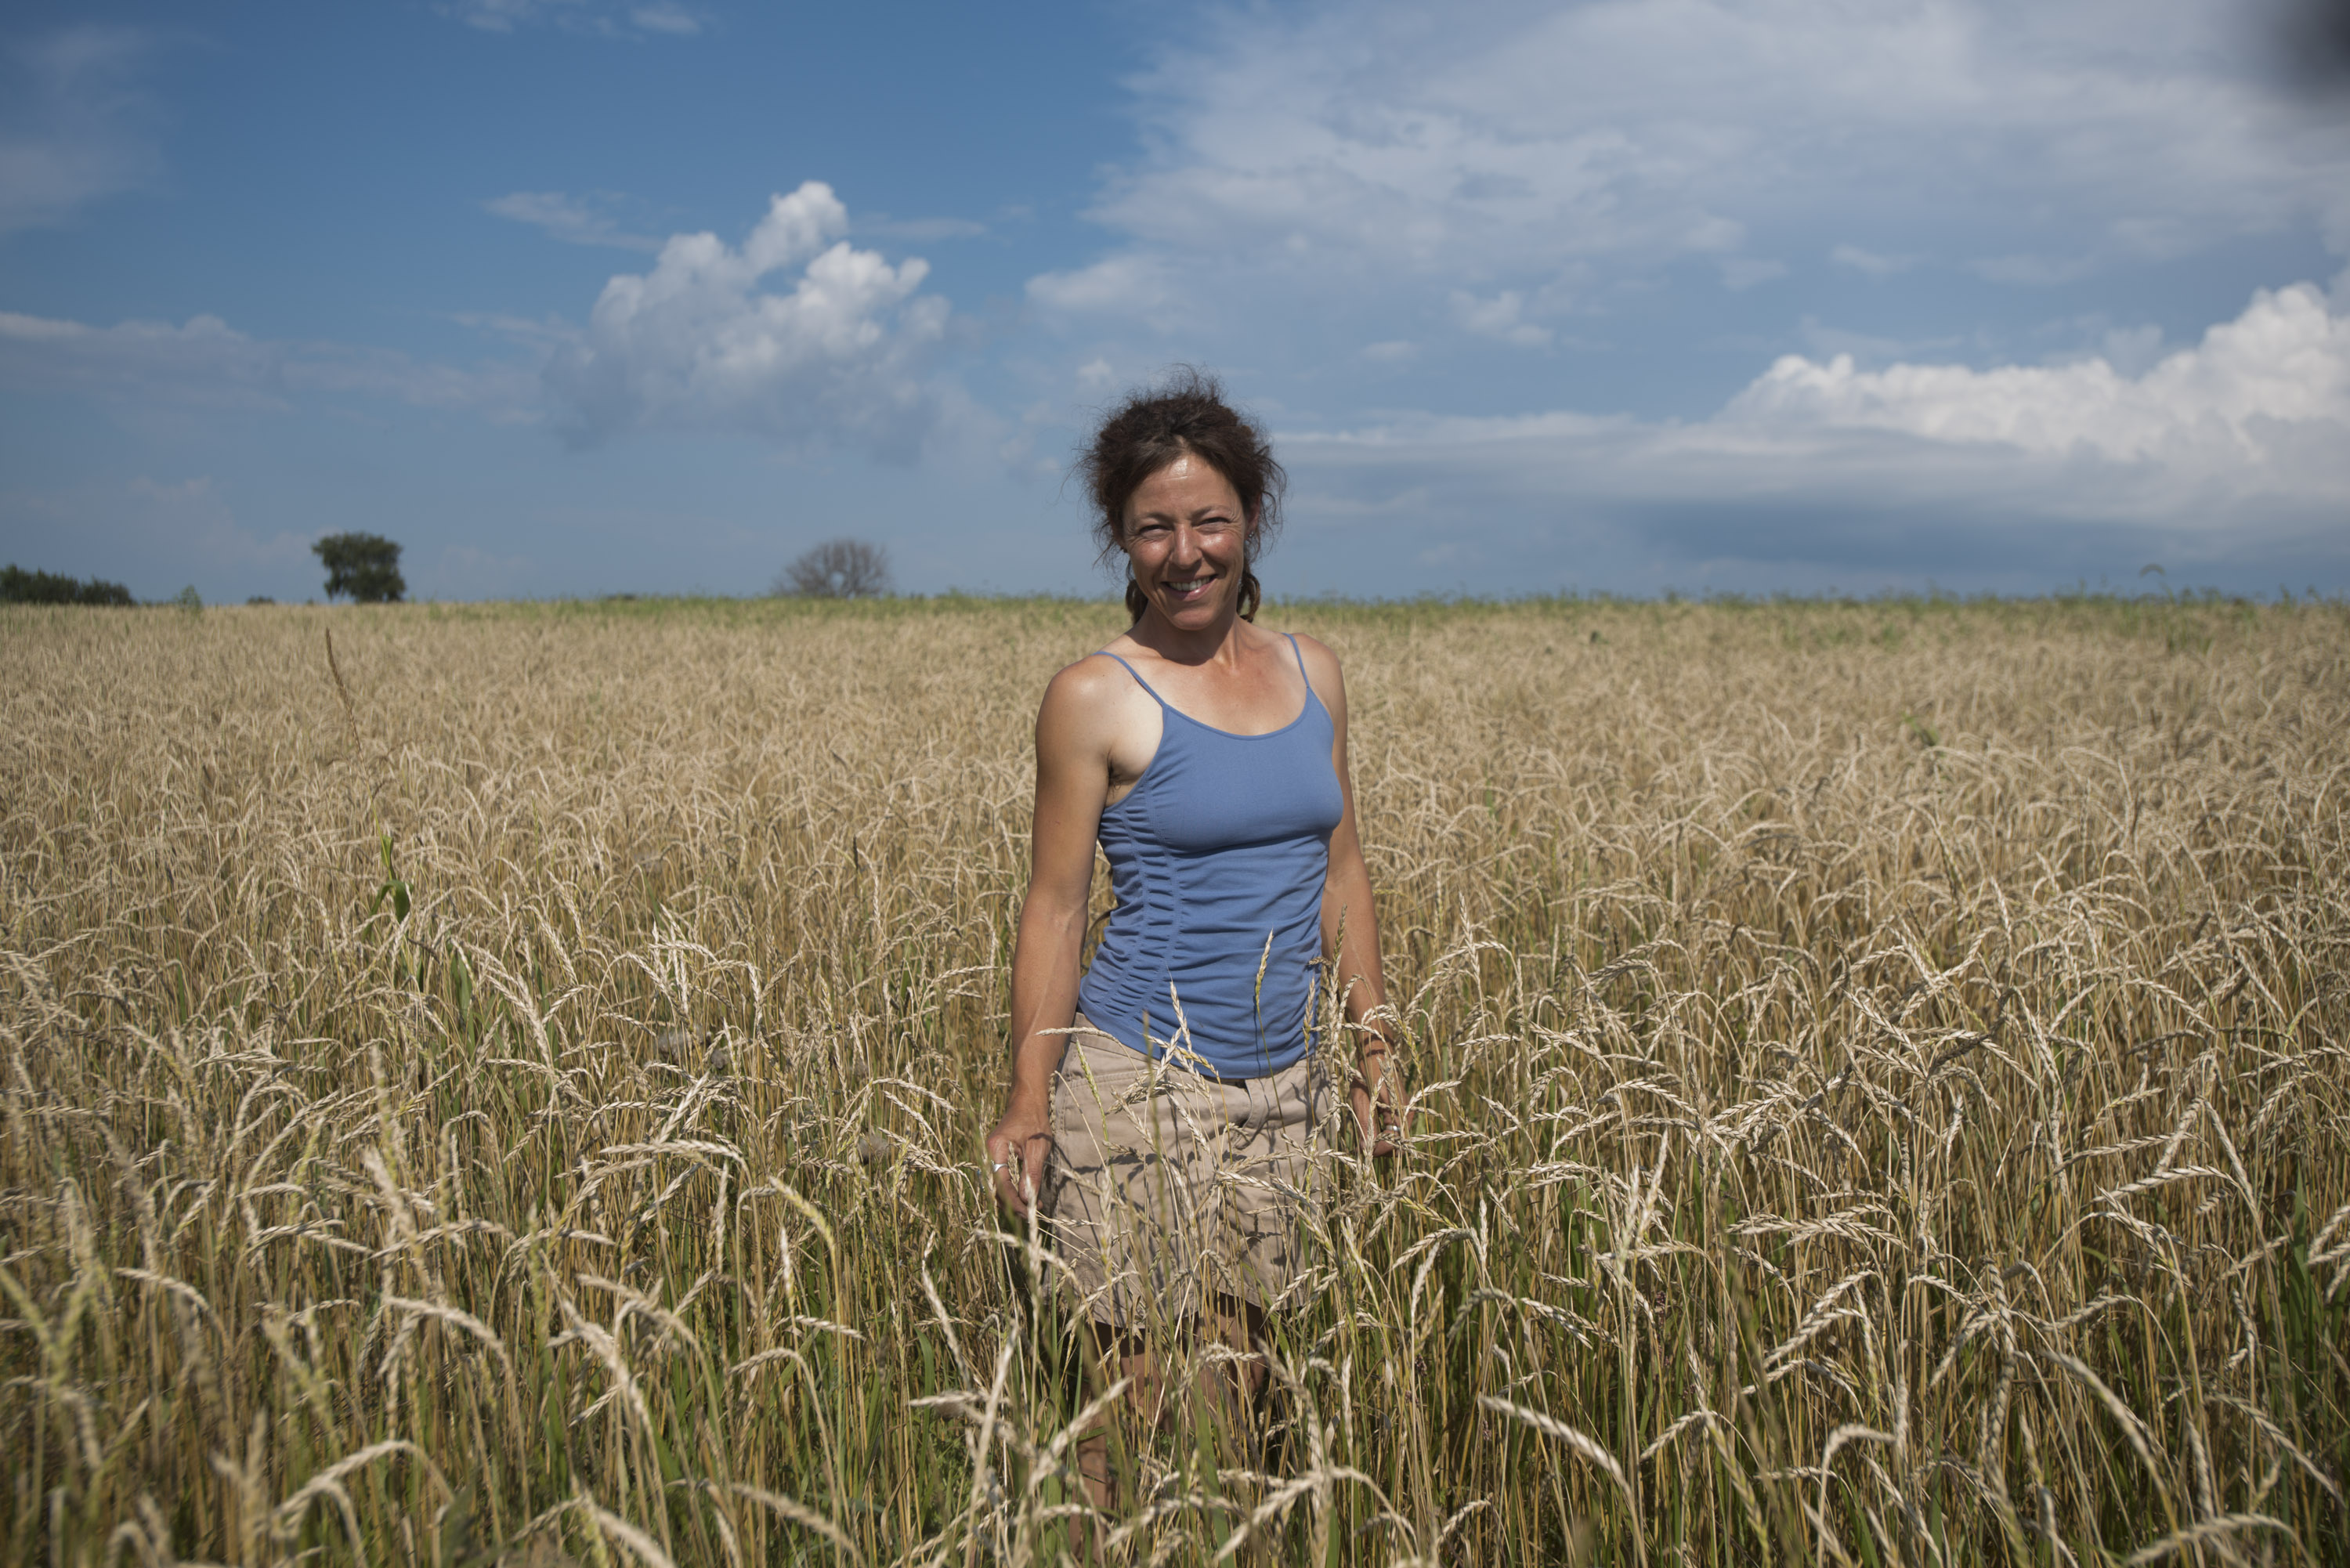 Andrea Hazzard in a Field